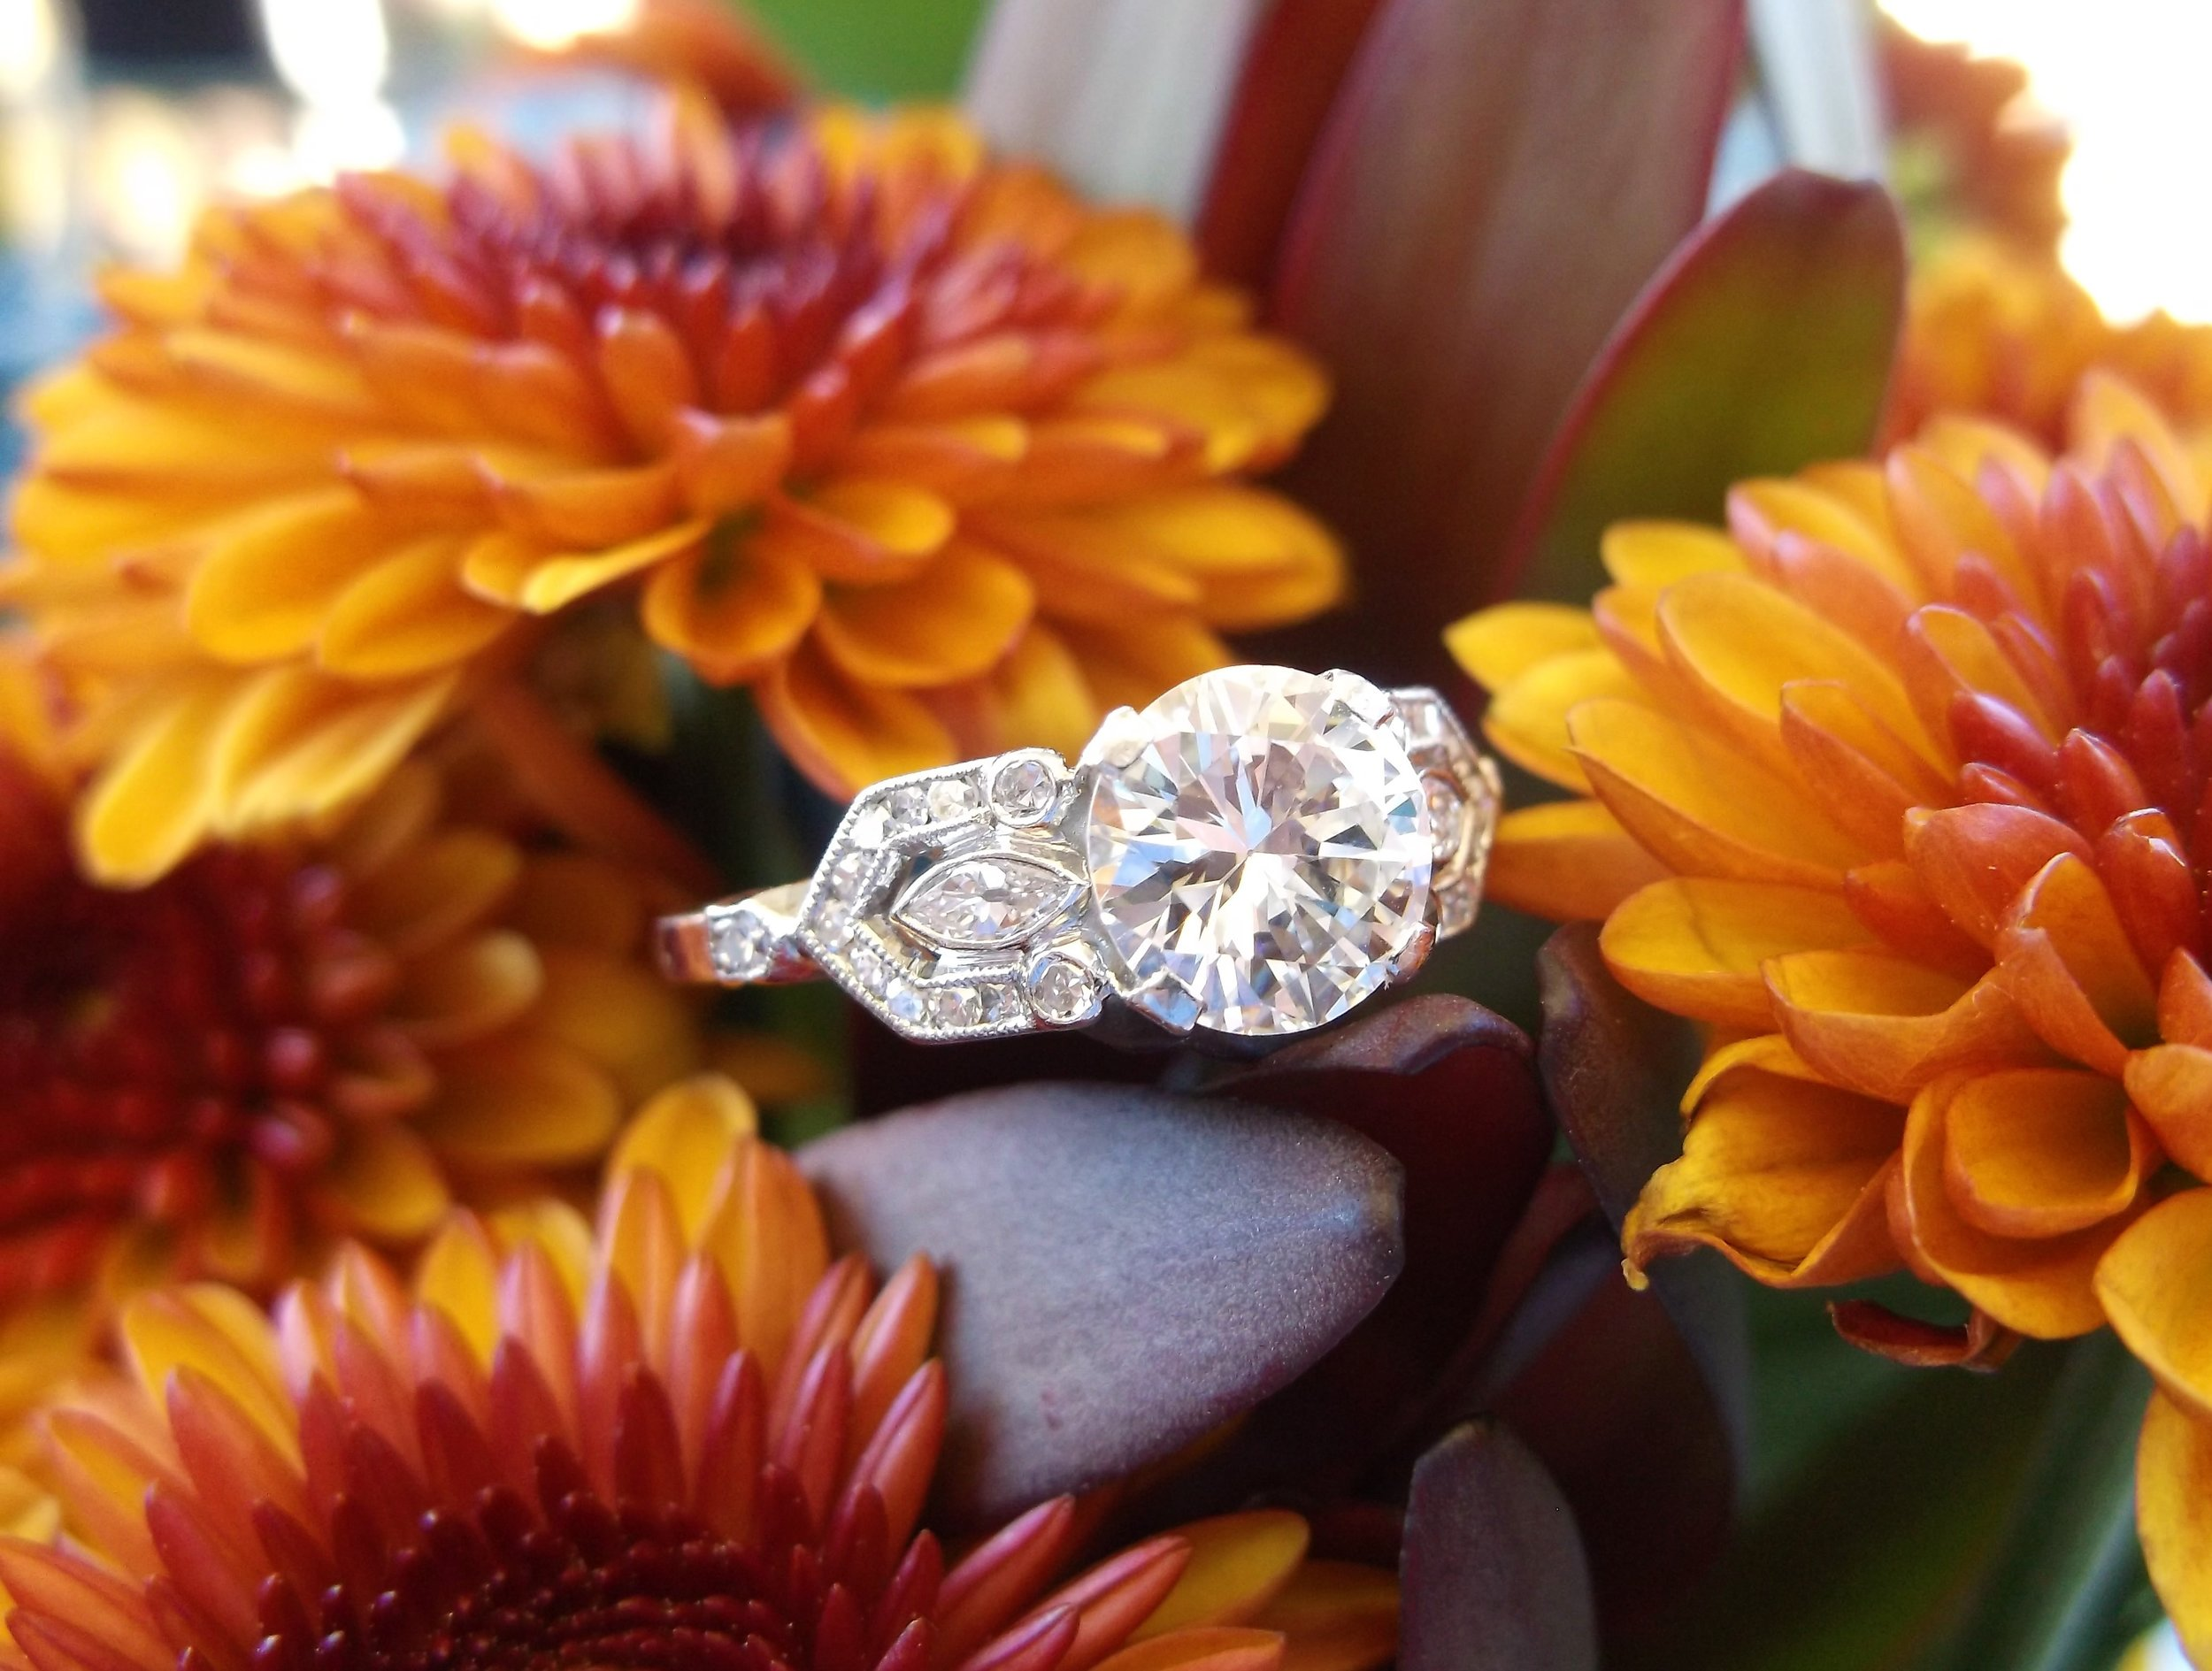 SOLD - Glamorous 1.24 carat Old European cut diamond set in a gorgeous diamond and platinum mounting.